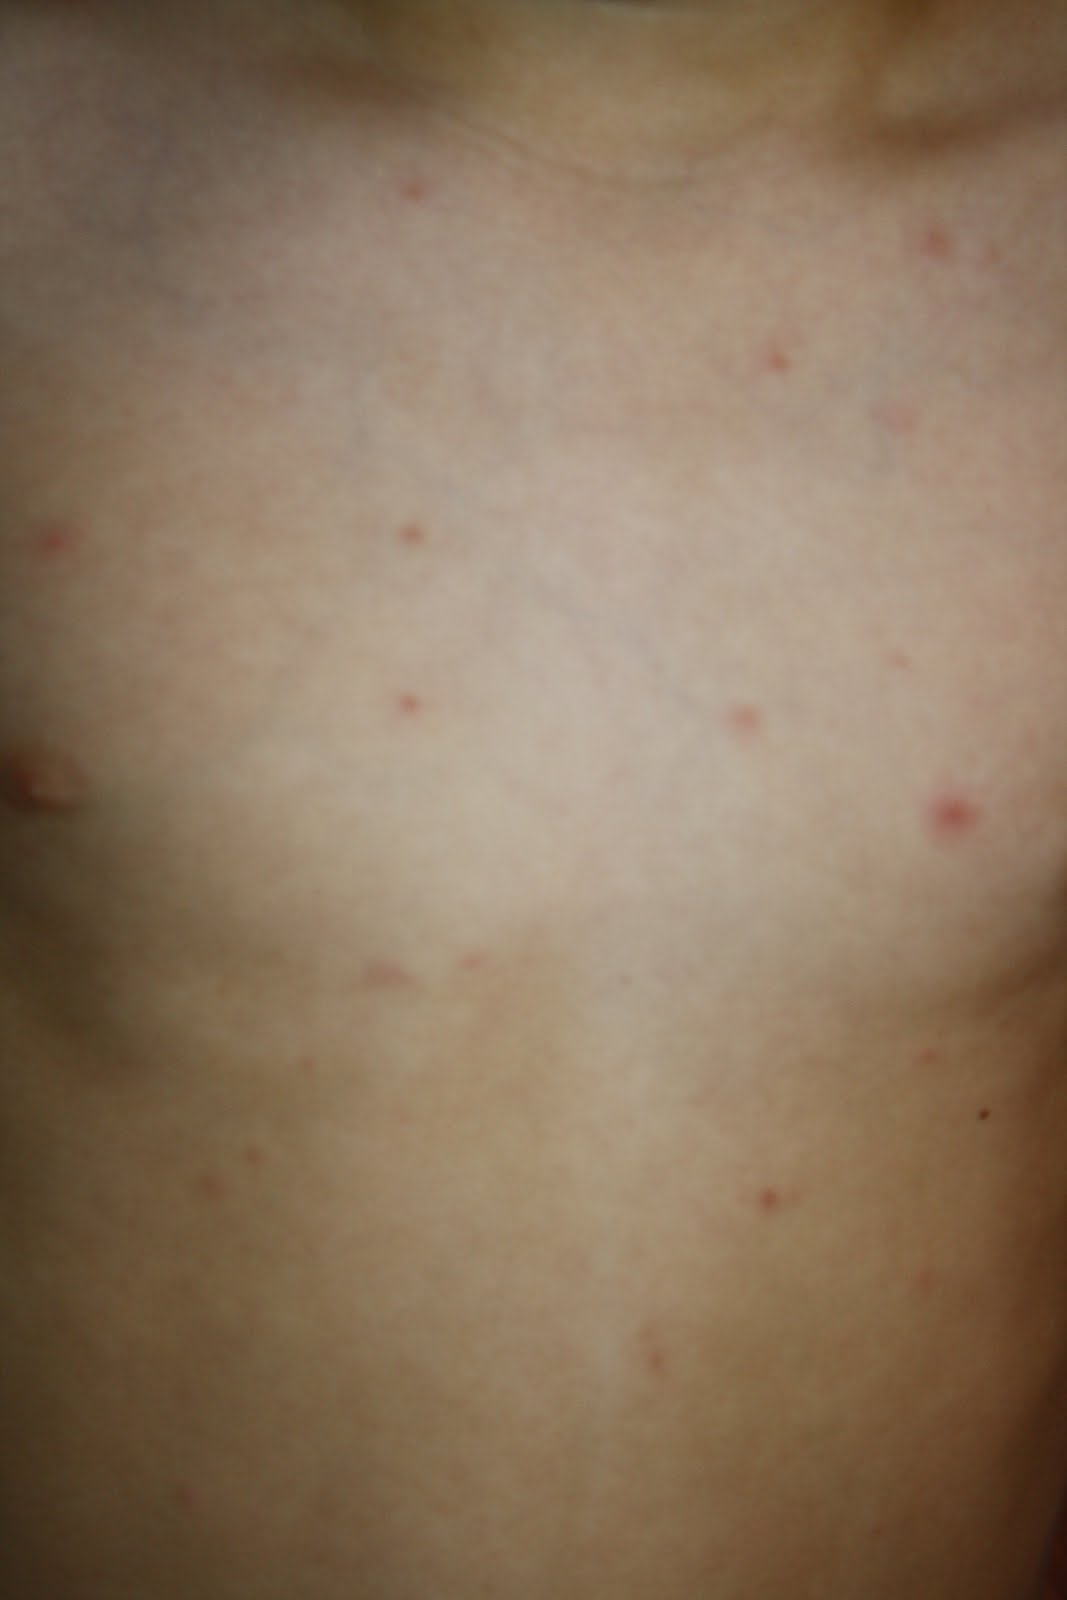 Chicken Pox Early Signs